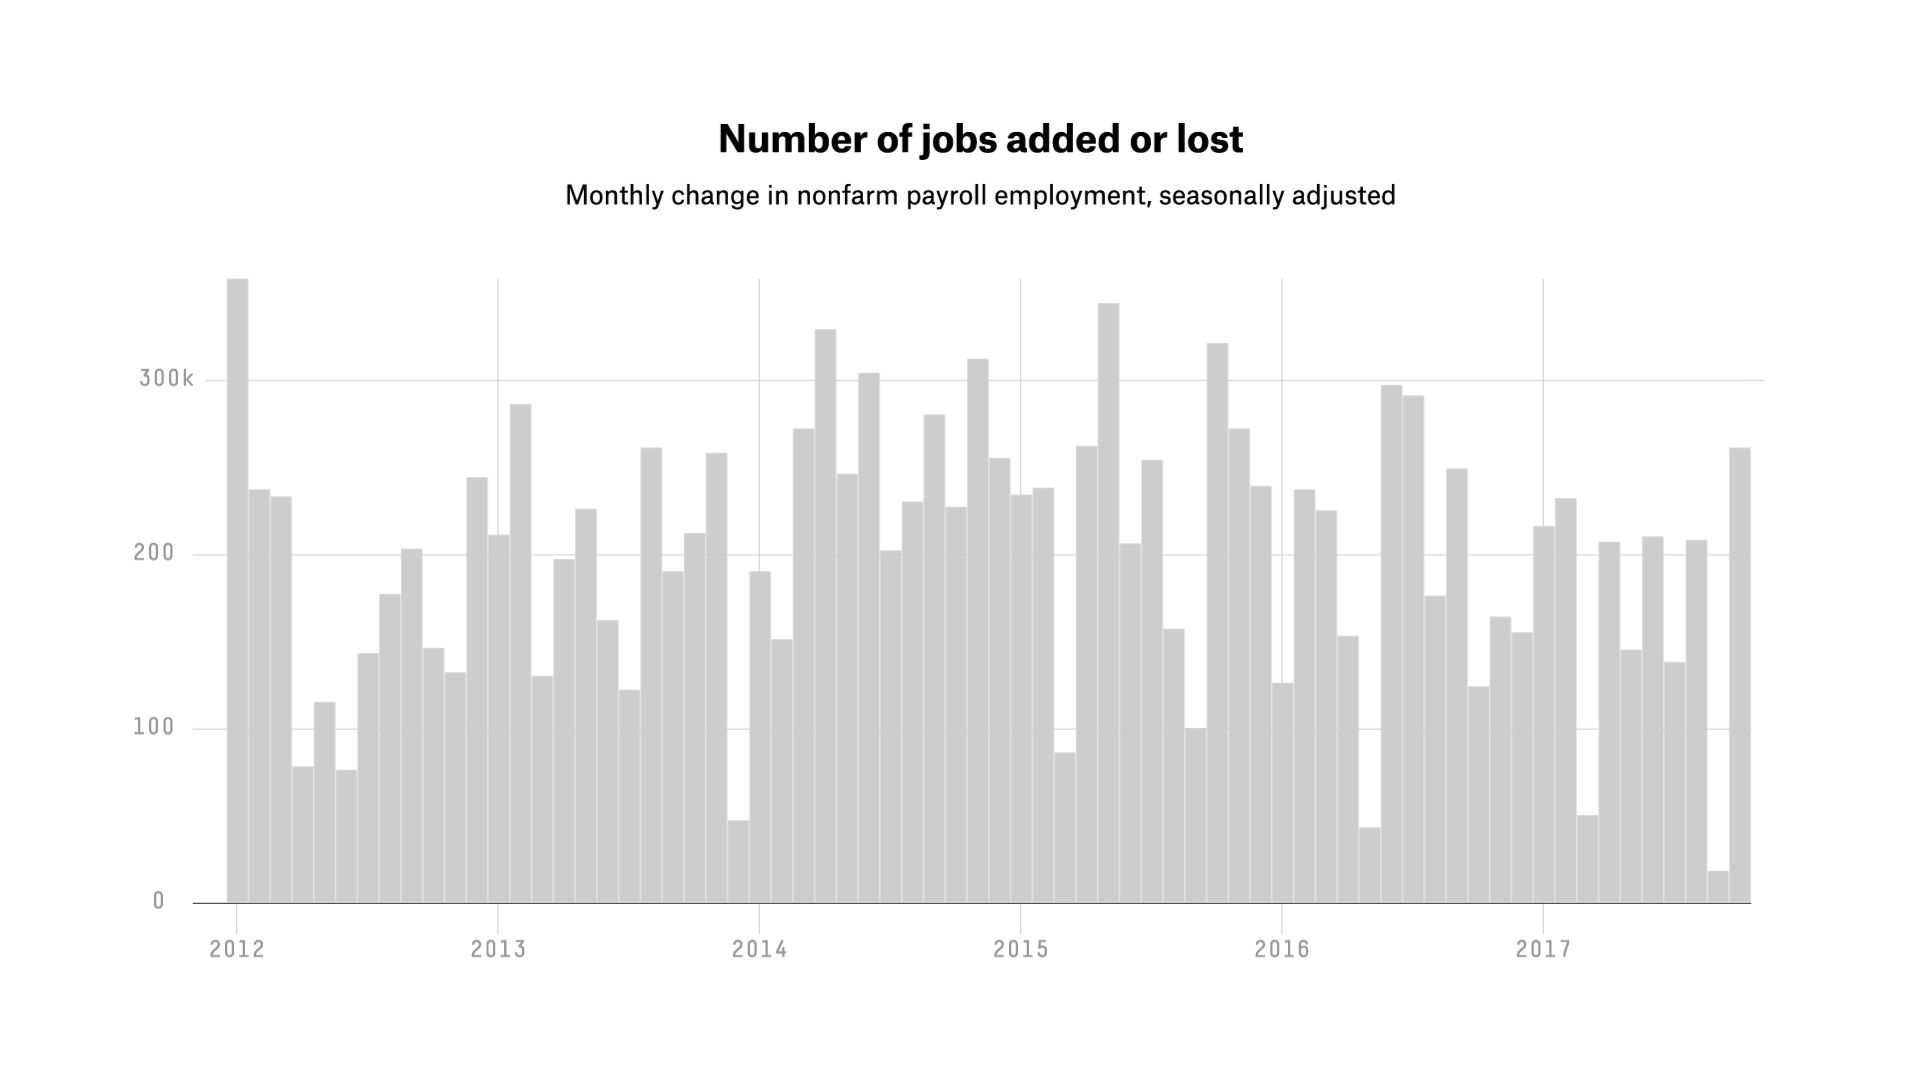 FiveThirtyEight: How accurate are those job report numbers?